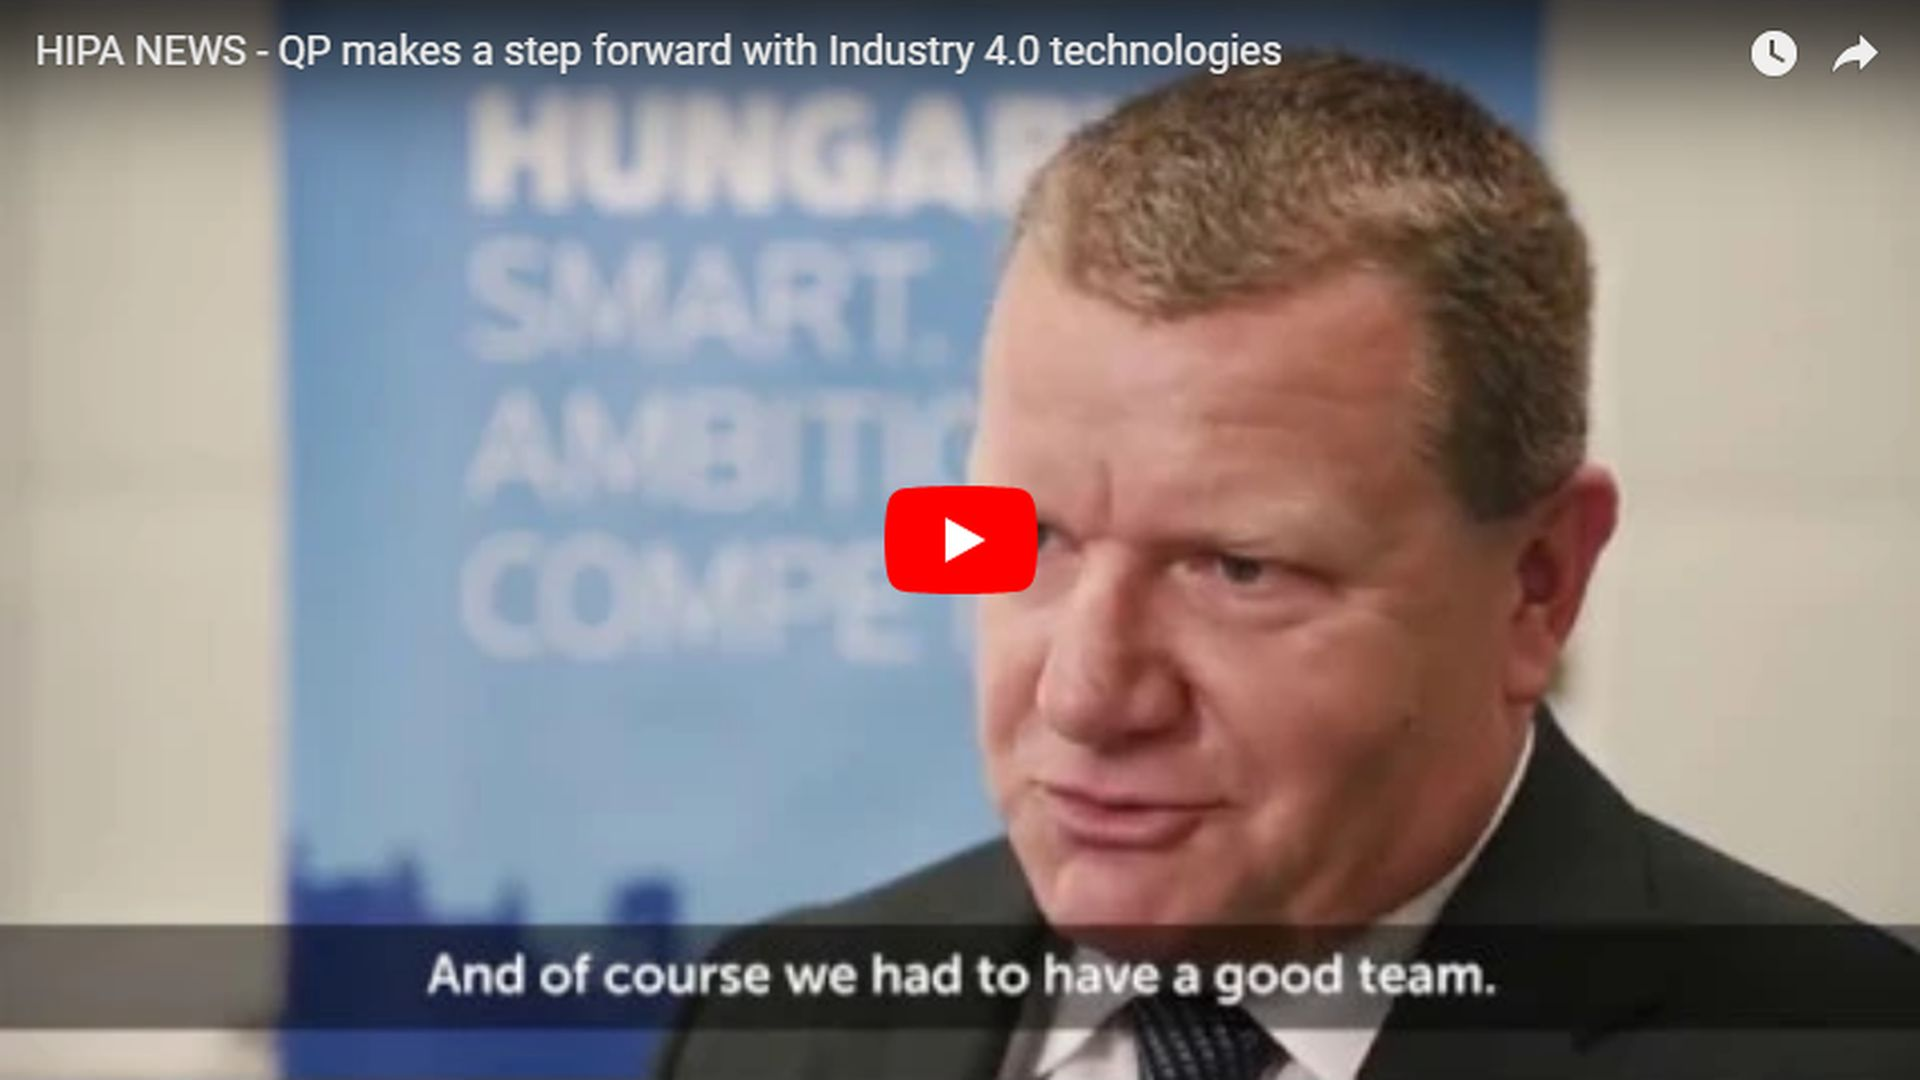 The Hungarian automotive supplier develops using Industry 4.0 production - VIDEO REPORT